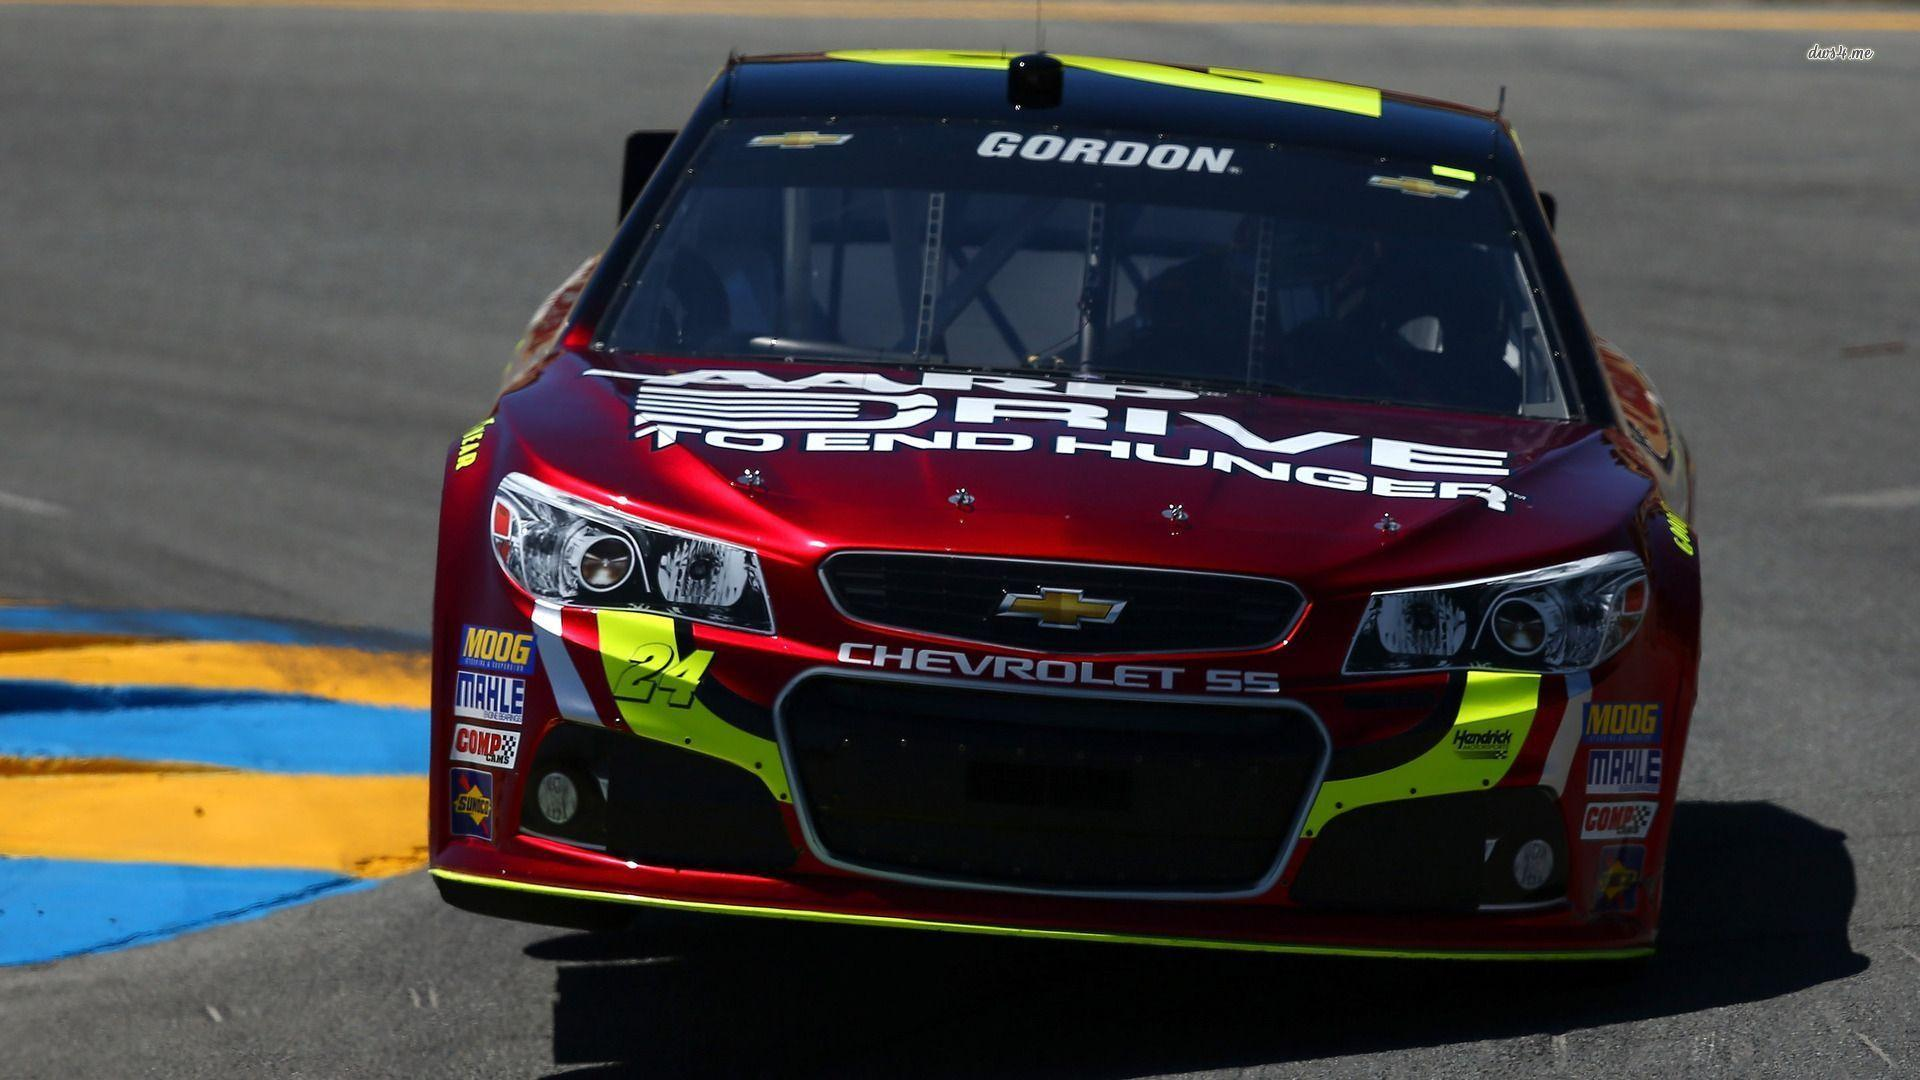 jeff gordon desktop wallpaper - photo #14